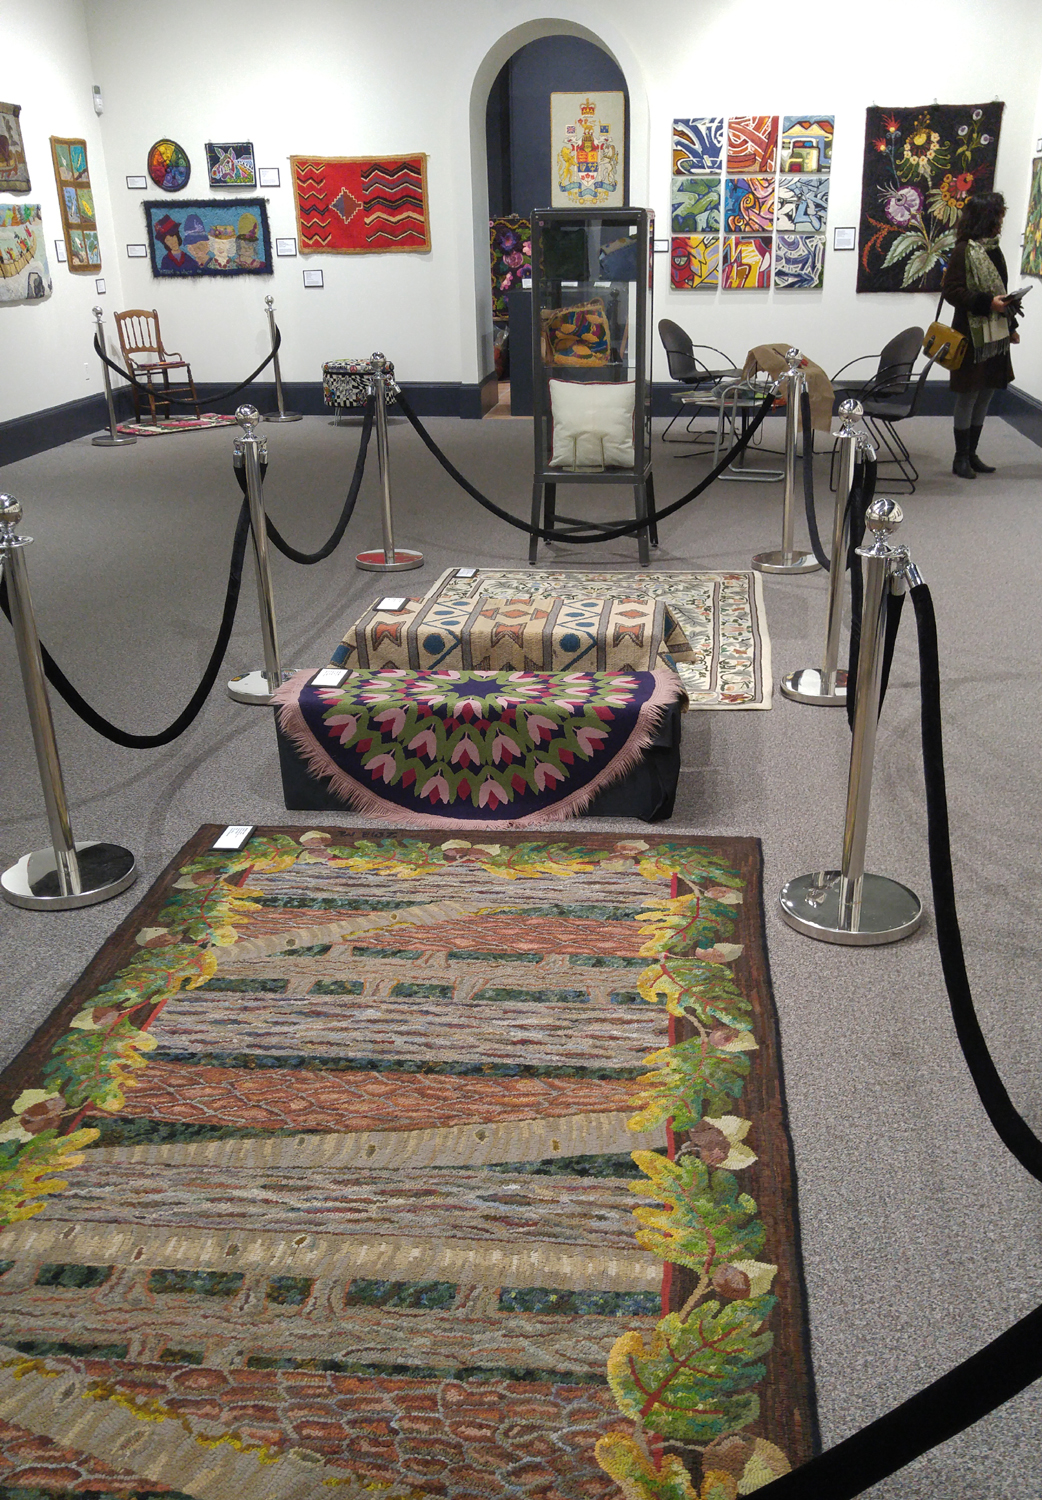 One of the displays of hooked rugs at the AGN.